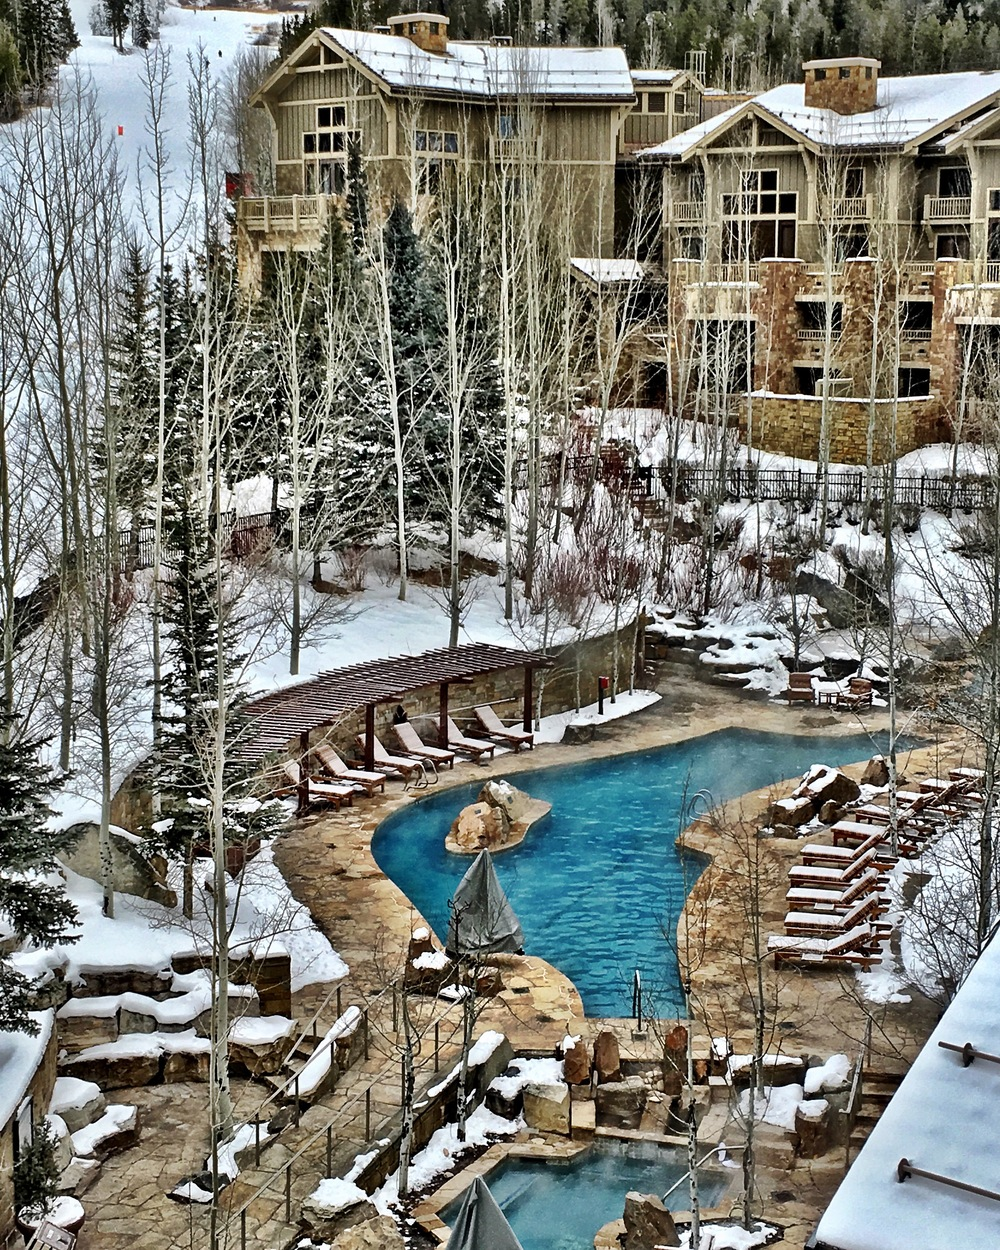 Grungy Slopes, Jackson Hole Wyoming, The Four Seasons 23.jpg